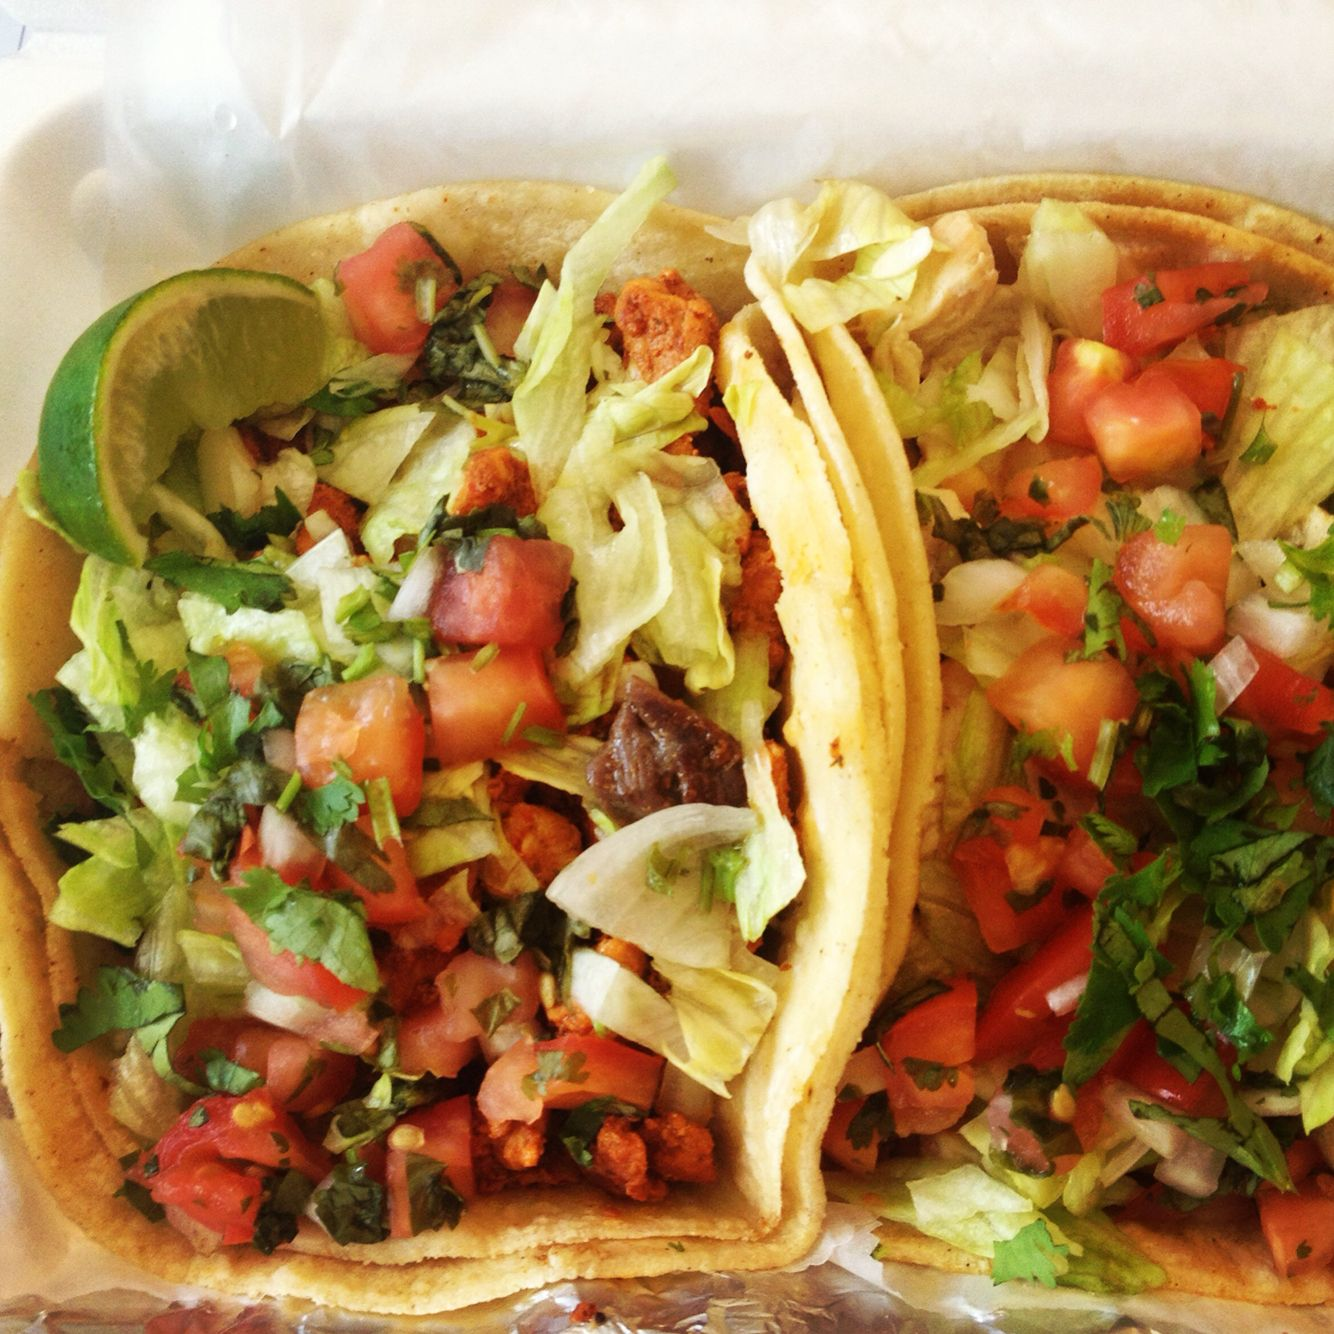 Best food truck tacos in NY